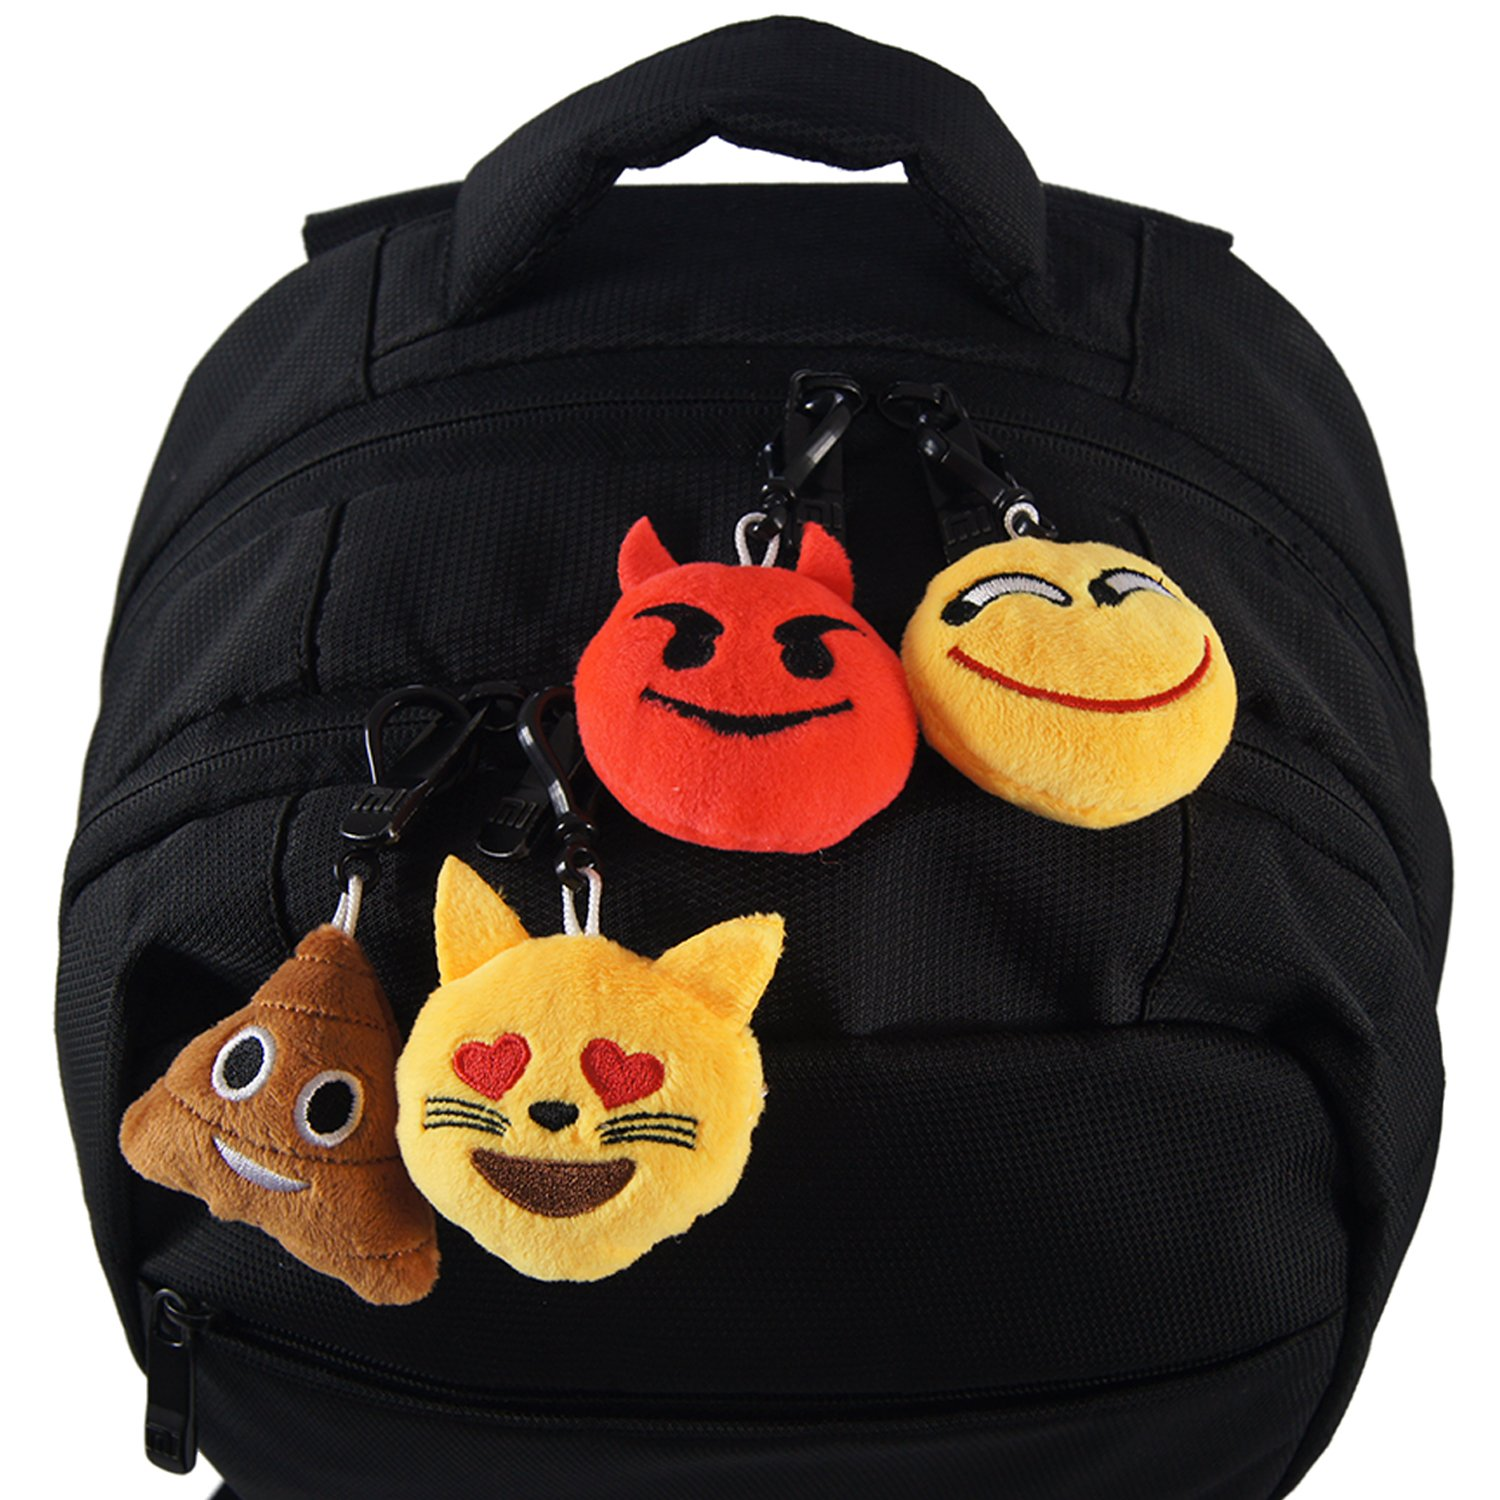 Ivenf Pack of 50 5cm/2'' Emoji Poop Plush Keychain Birthday Party Favors Supplies Mini Pillows Set, Emoticon Backpack Clips, Goodie Bag Stuffers Pinata Fillers Novelty Gifts Toys Prizes for Kids by Ivenf (Image #6)